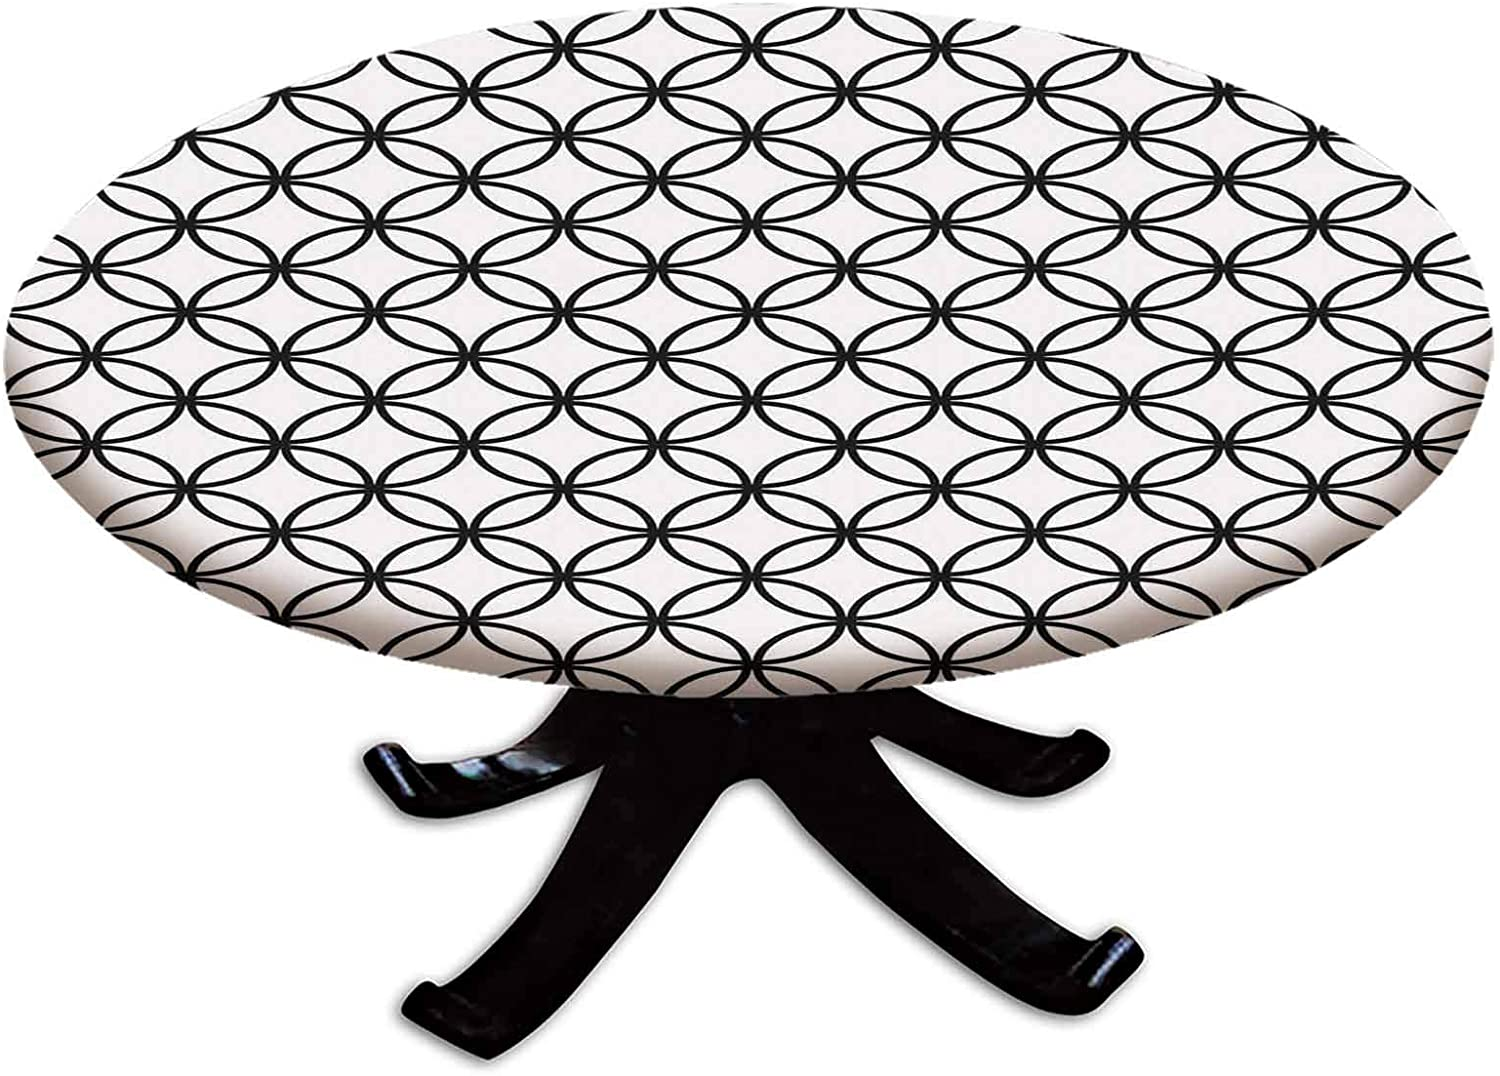 Elastic Edged Polyester メーカー公式 お買得 Fitted Cover Monochrome Table Minimalist